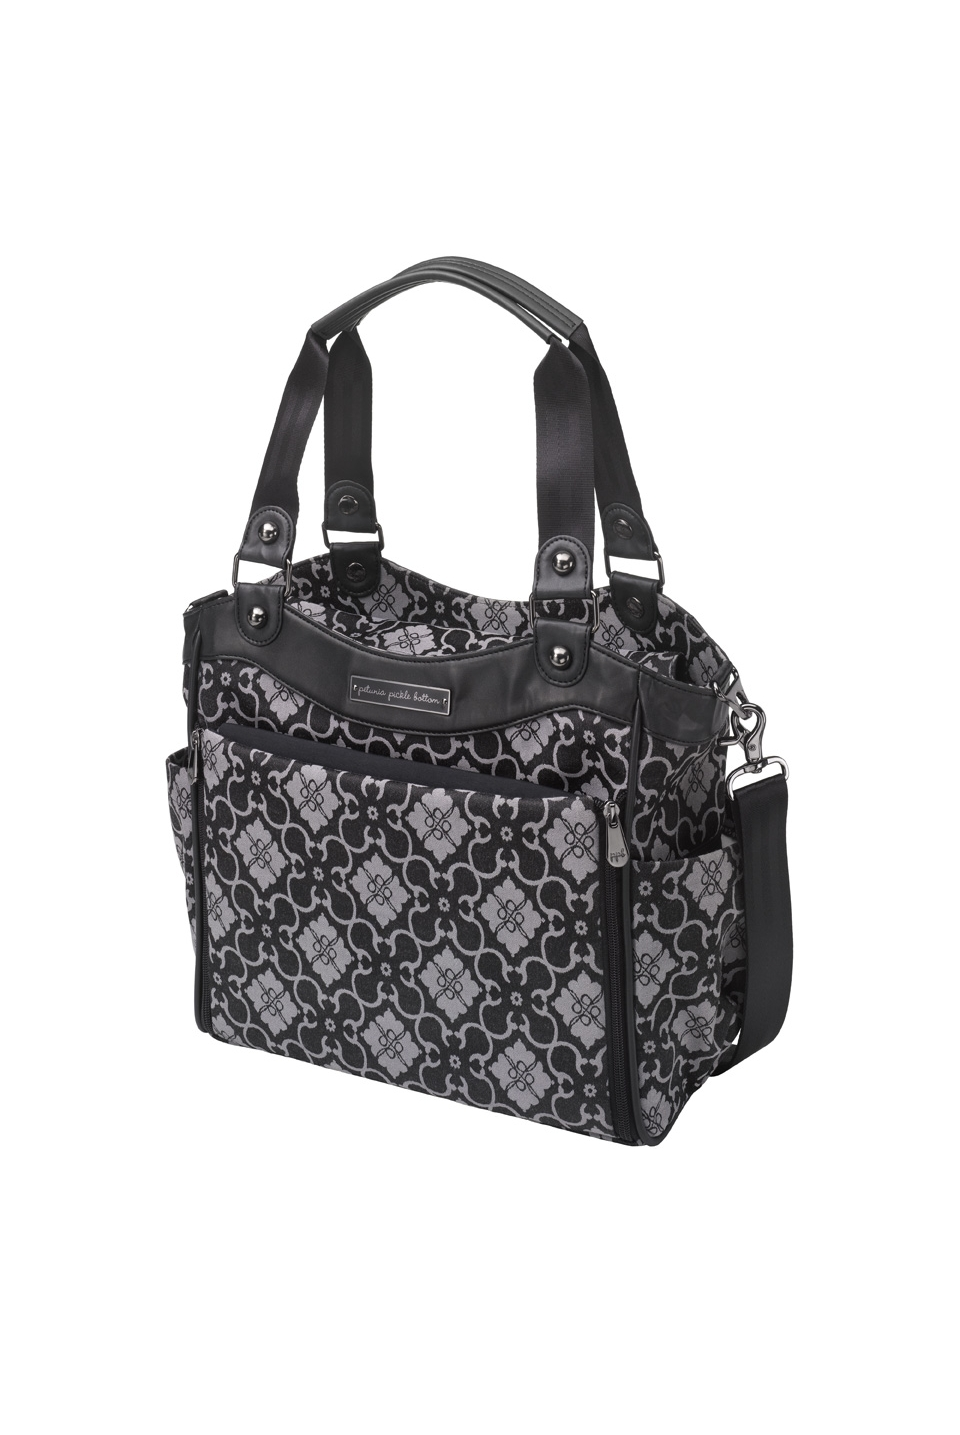 579c544db048 Сумка для мамы Petunia City Carryall: London Mist - купить сумки для ...